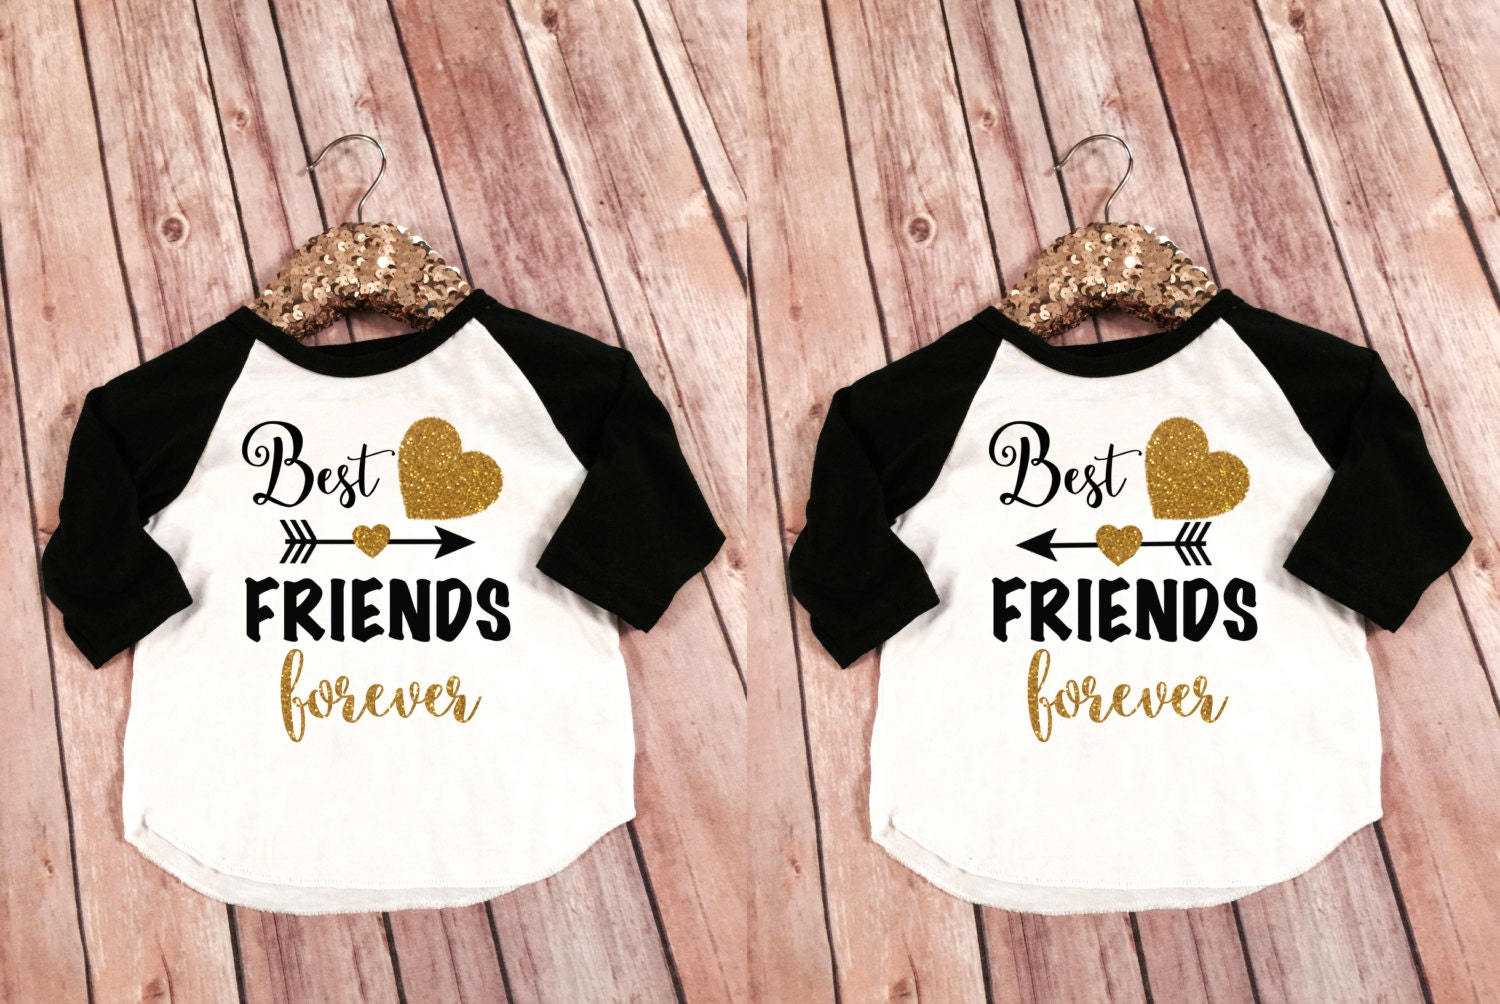 Best Friends Kid's Shirts Best Friends Forever Shirts